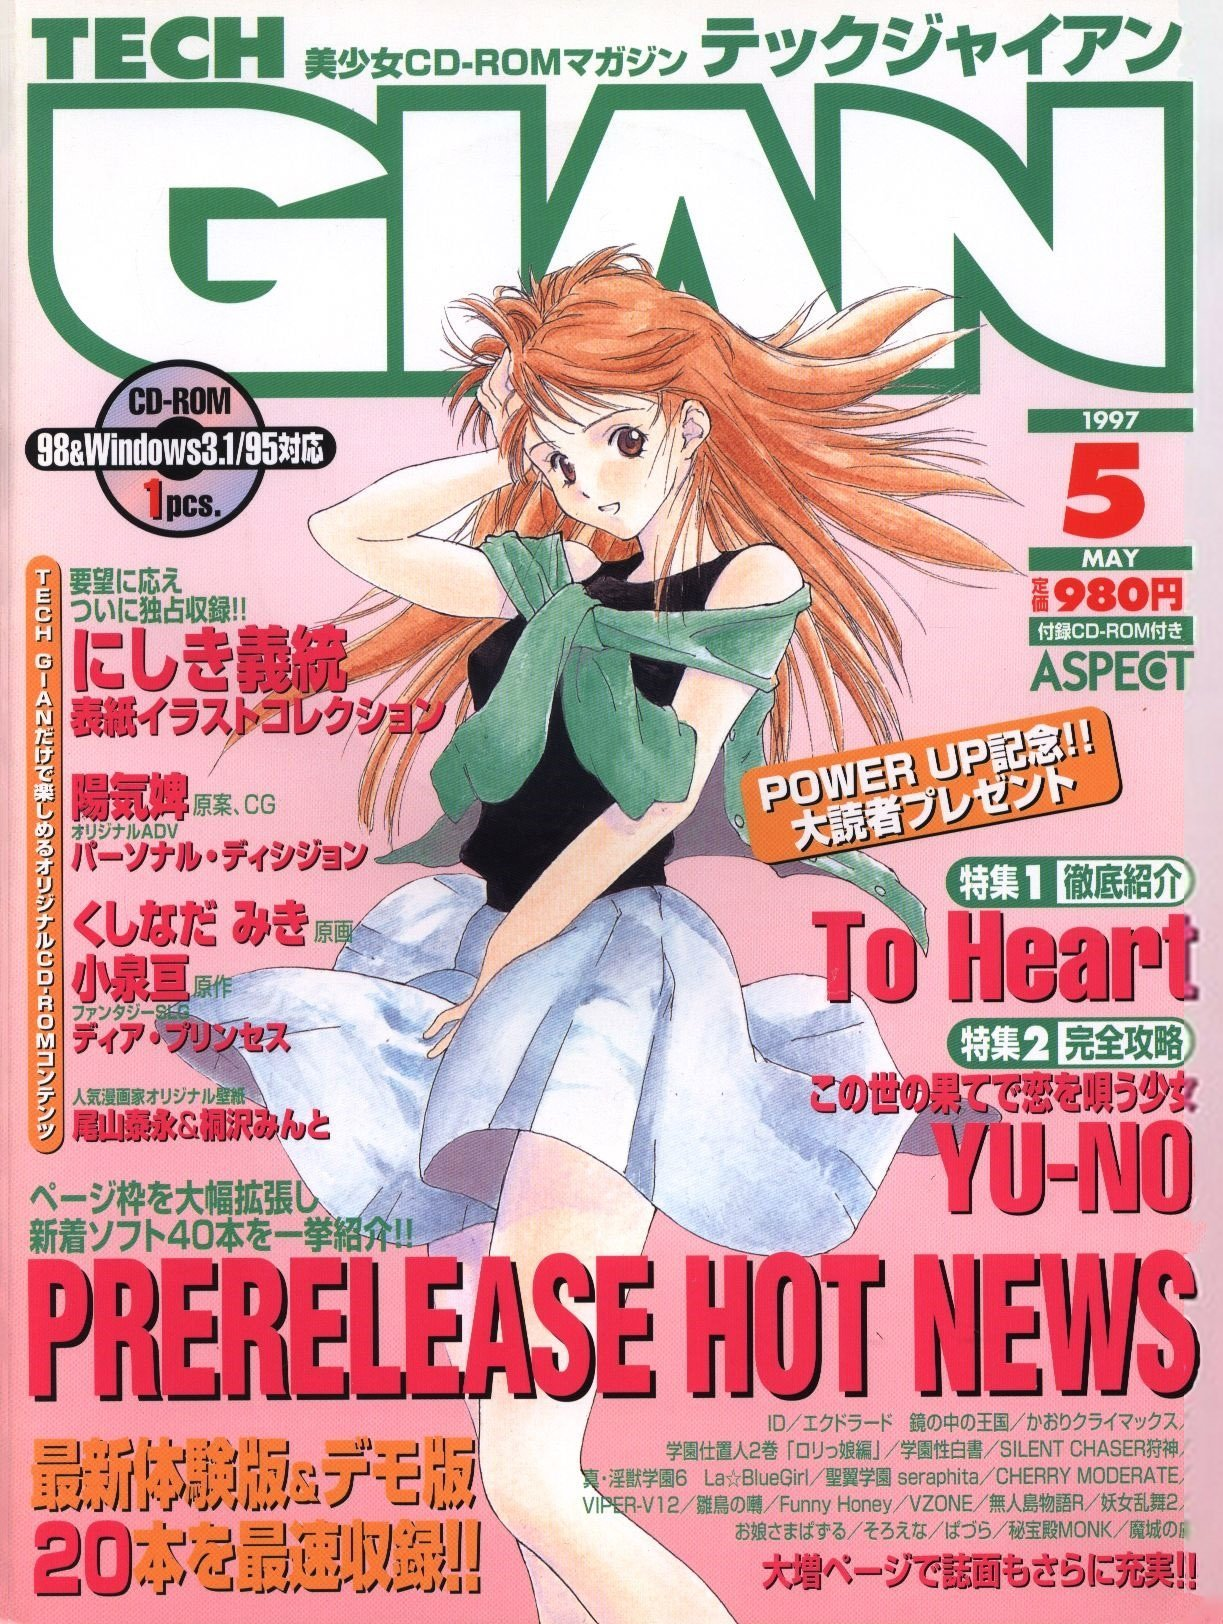 Tech Gian Issue 007 (May 1997)